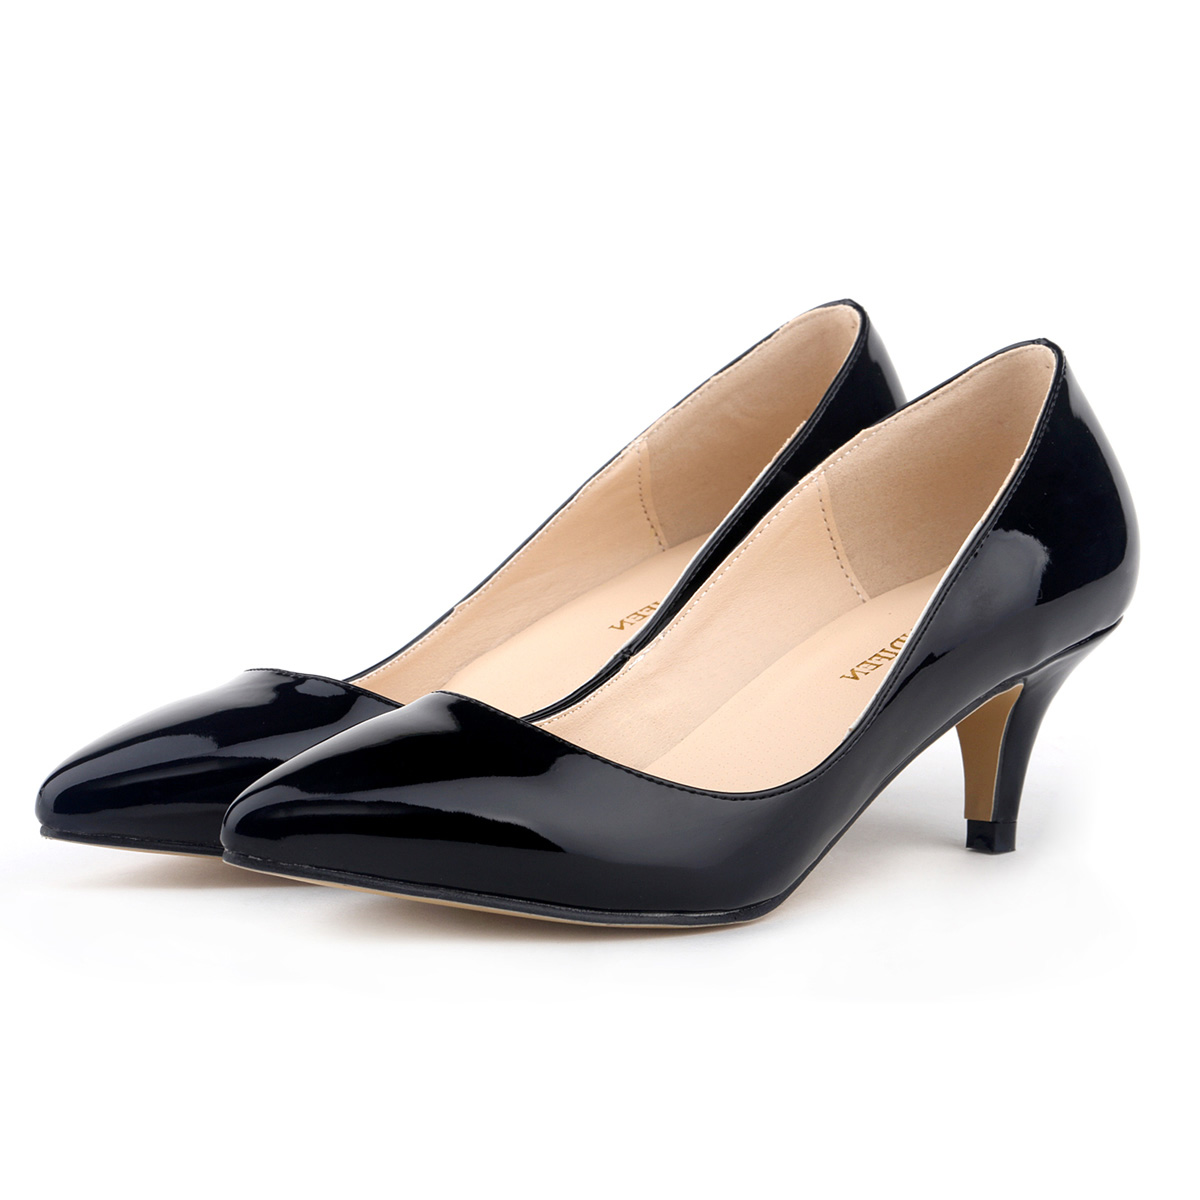 Complement any outfit with elegant women's heels from Sears. The right pair of shoes can transform even the most basic ensemble. Women's heels instantly lift an outfit, taking it from just okay to